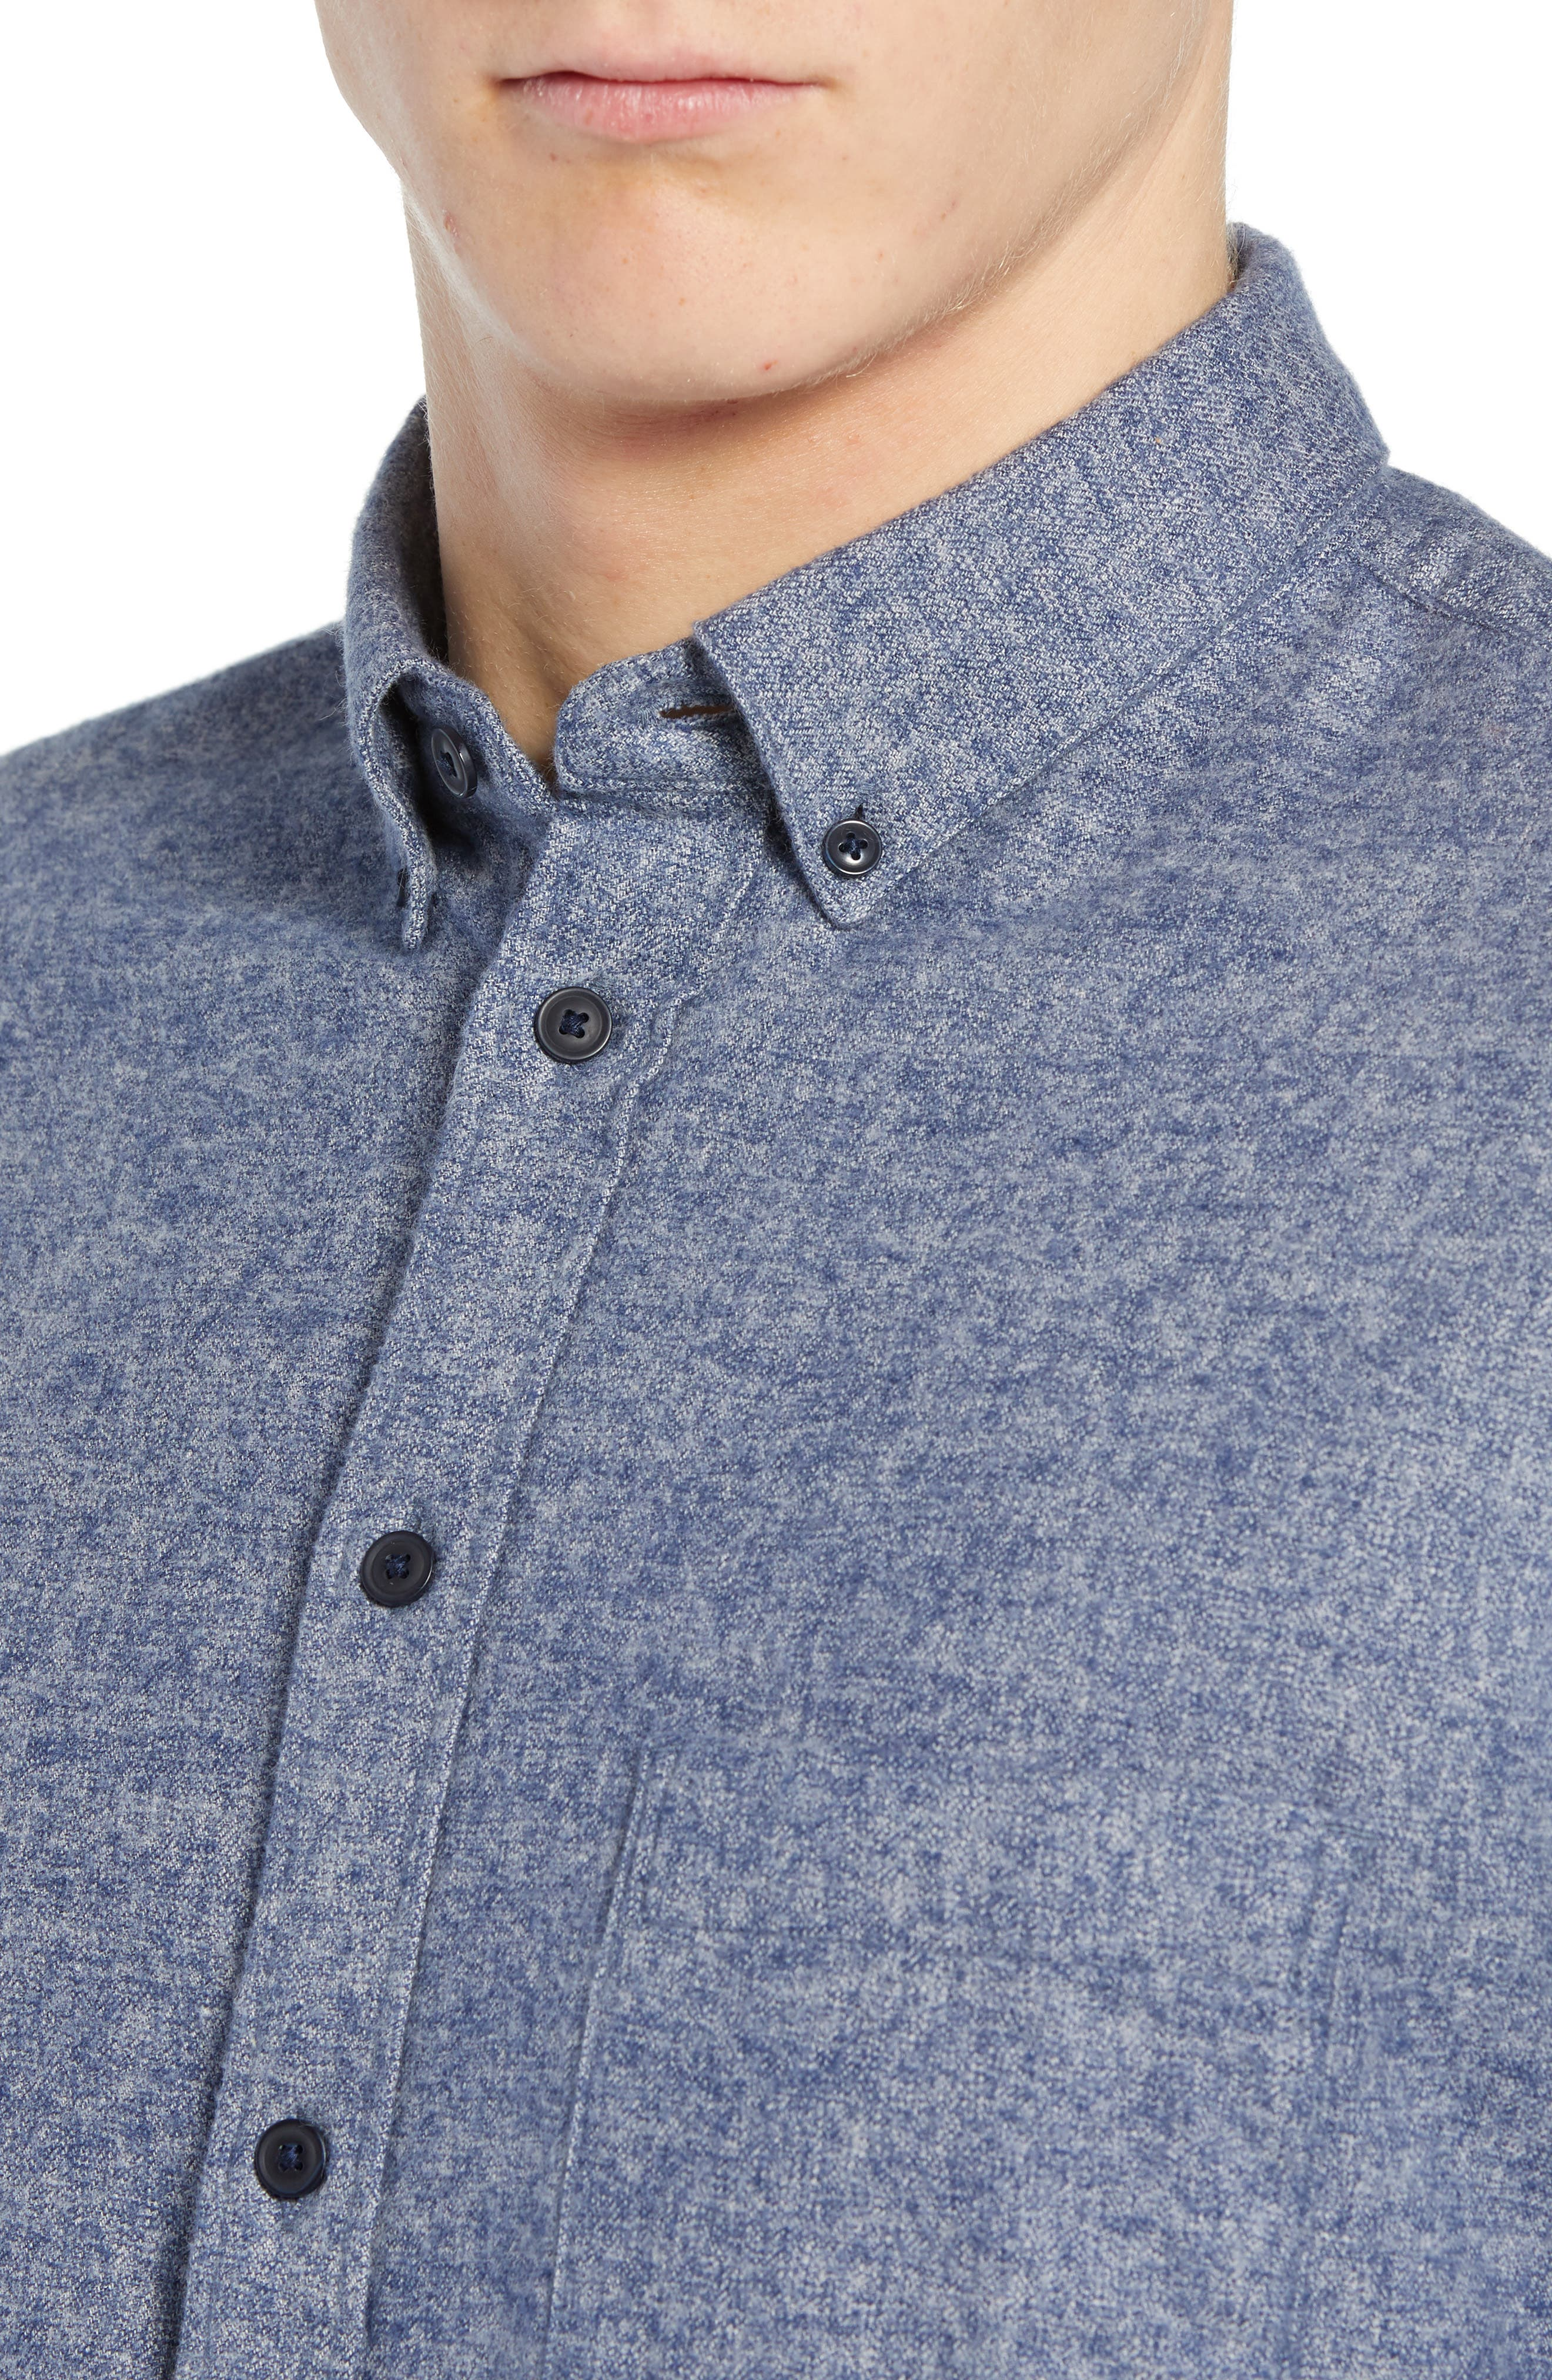 Levi's<sup>®</sup> Made & Crafted Standard Regular Fit Twill Shirt,                             Alternate thumbnail 2, color,                             400